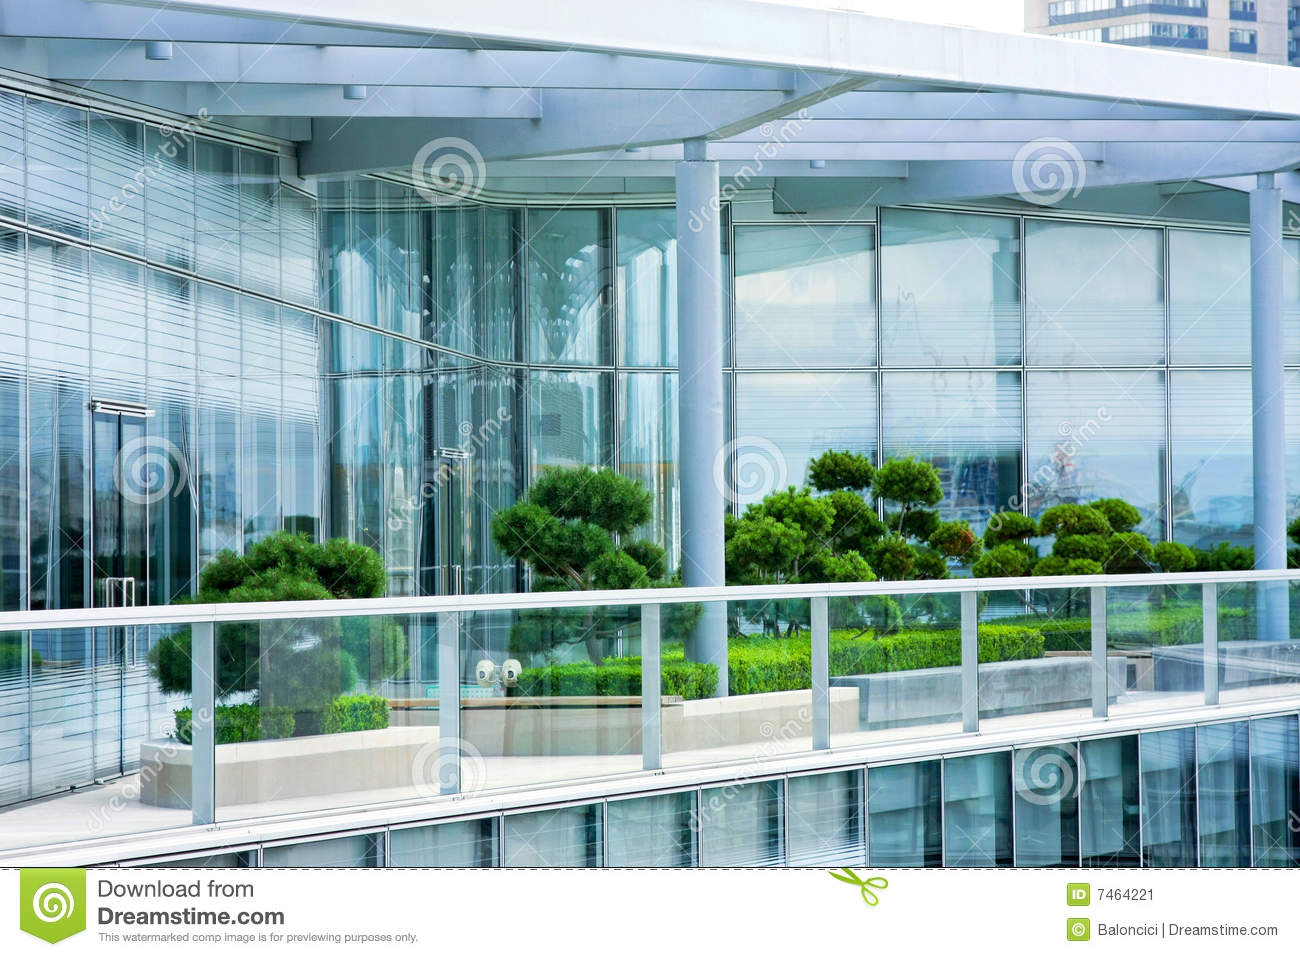 Jardin d 39 appartement terrasse image stock image du for Appartement balcon terrasse